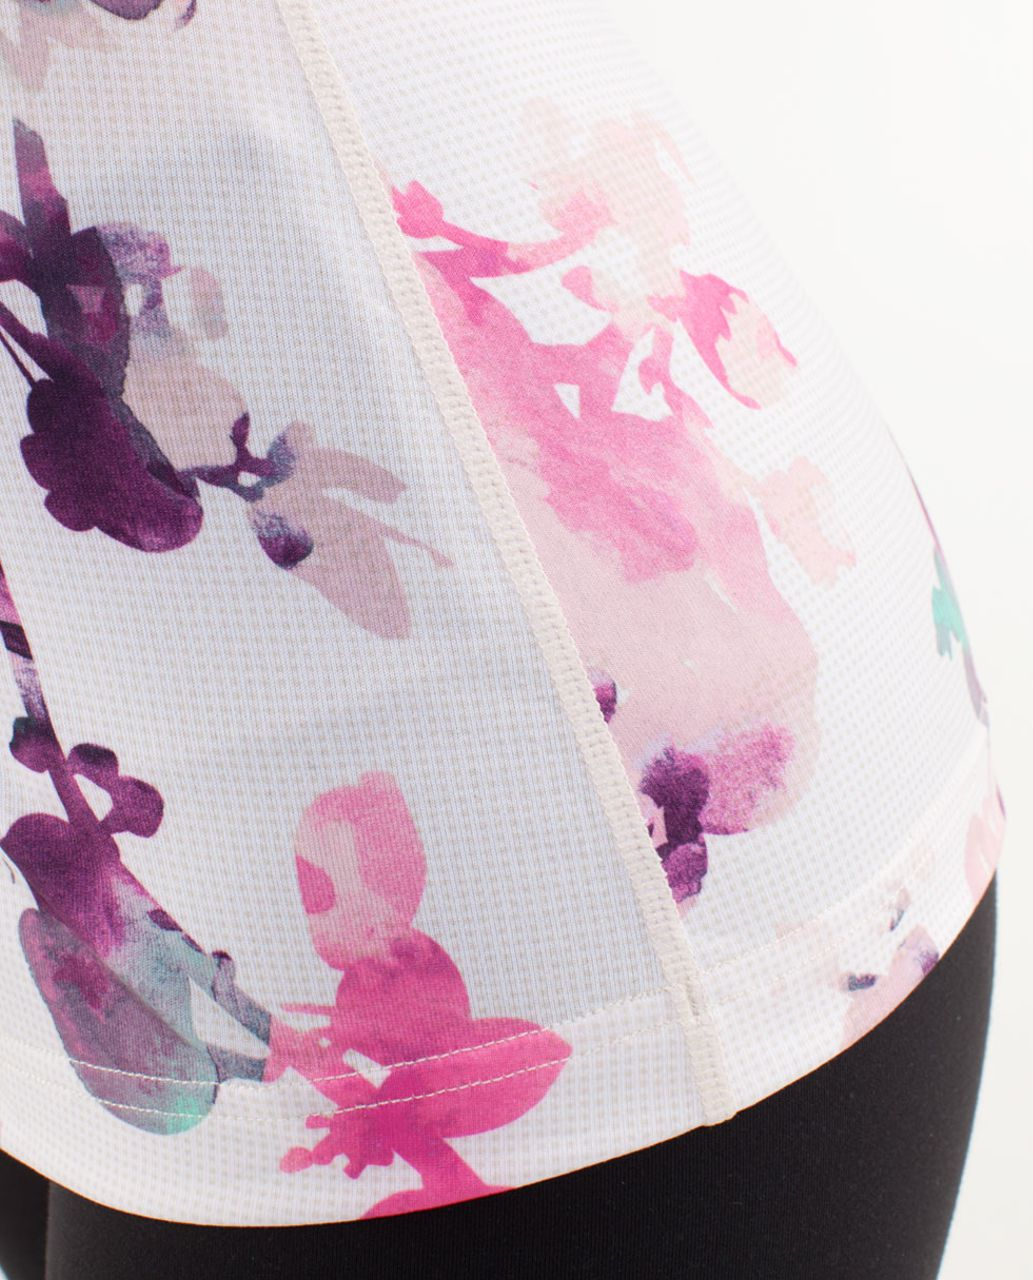 Lululemon Cool Racerback - Blurred Blossoms Multi Colour